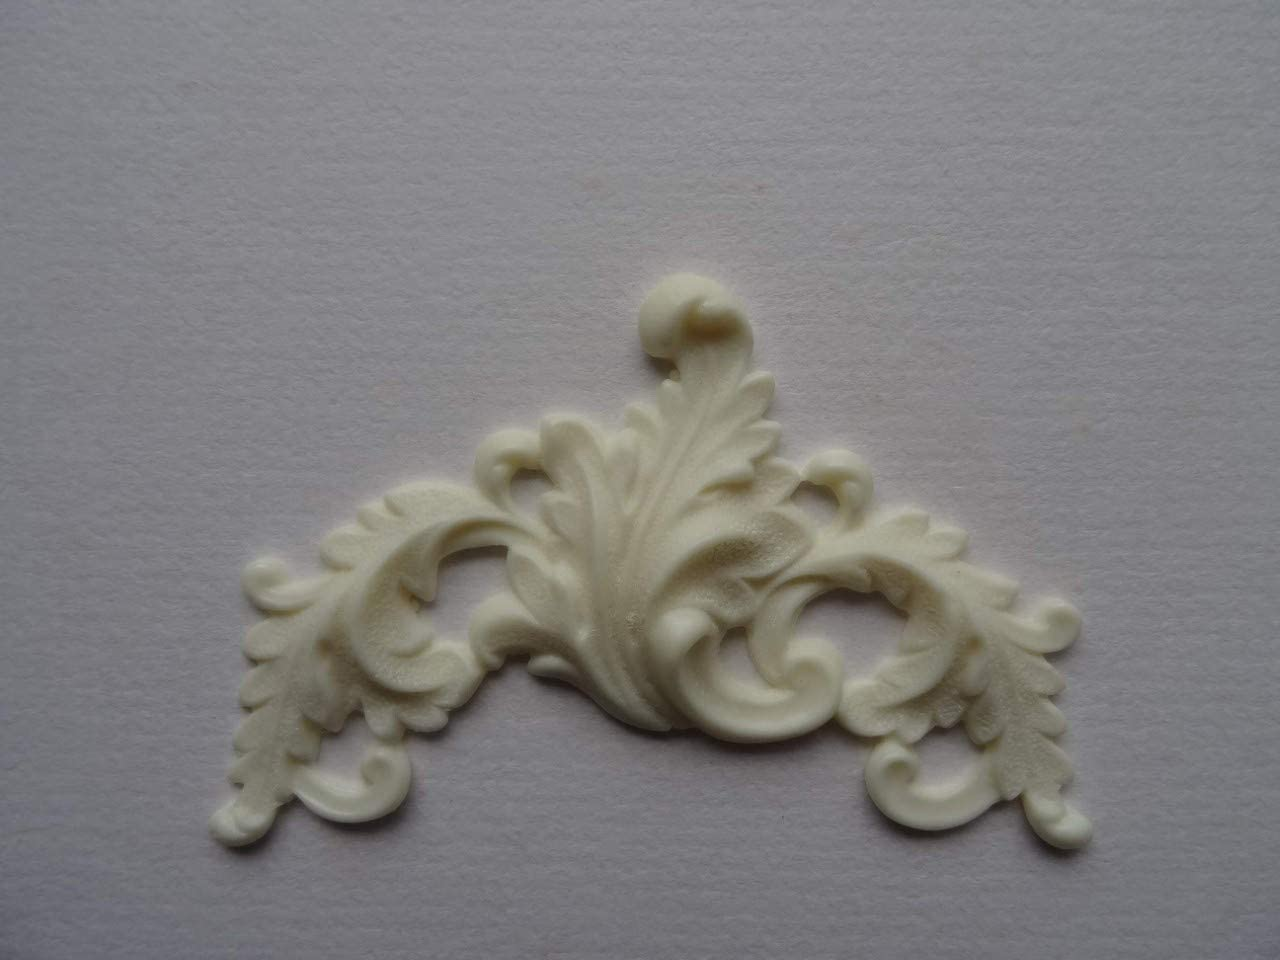 Decorative scroll applique onlay furniture moulding P17